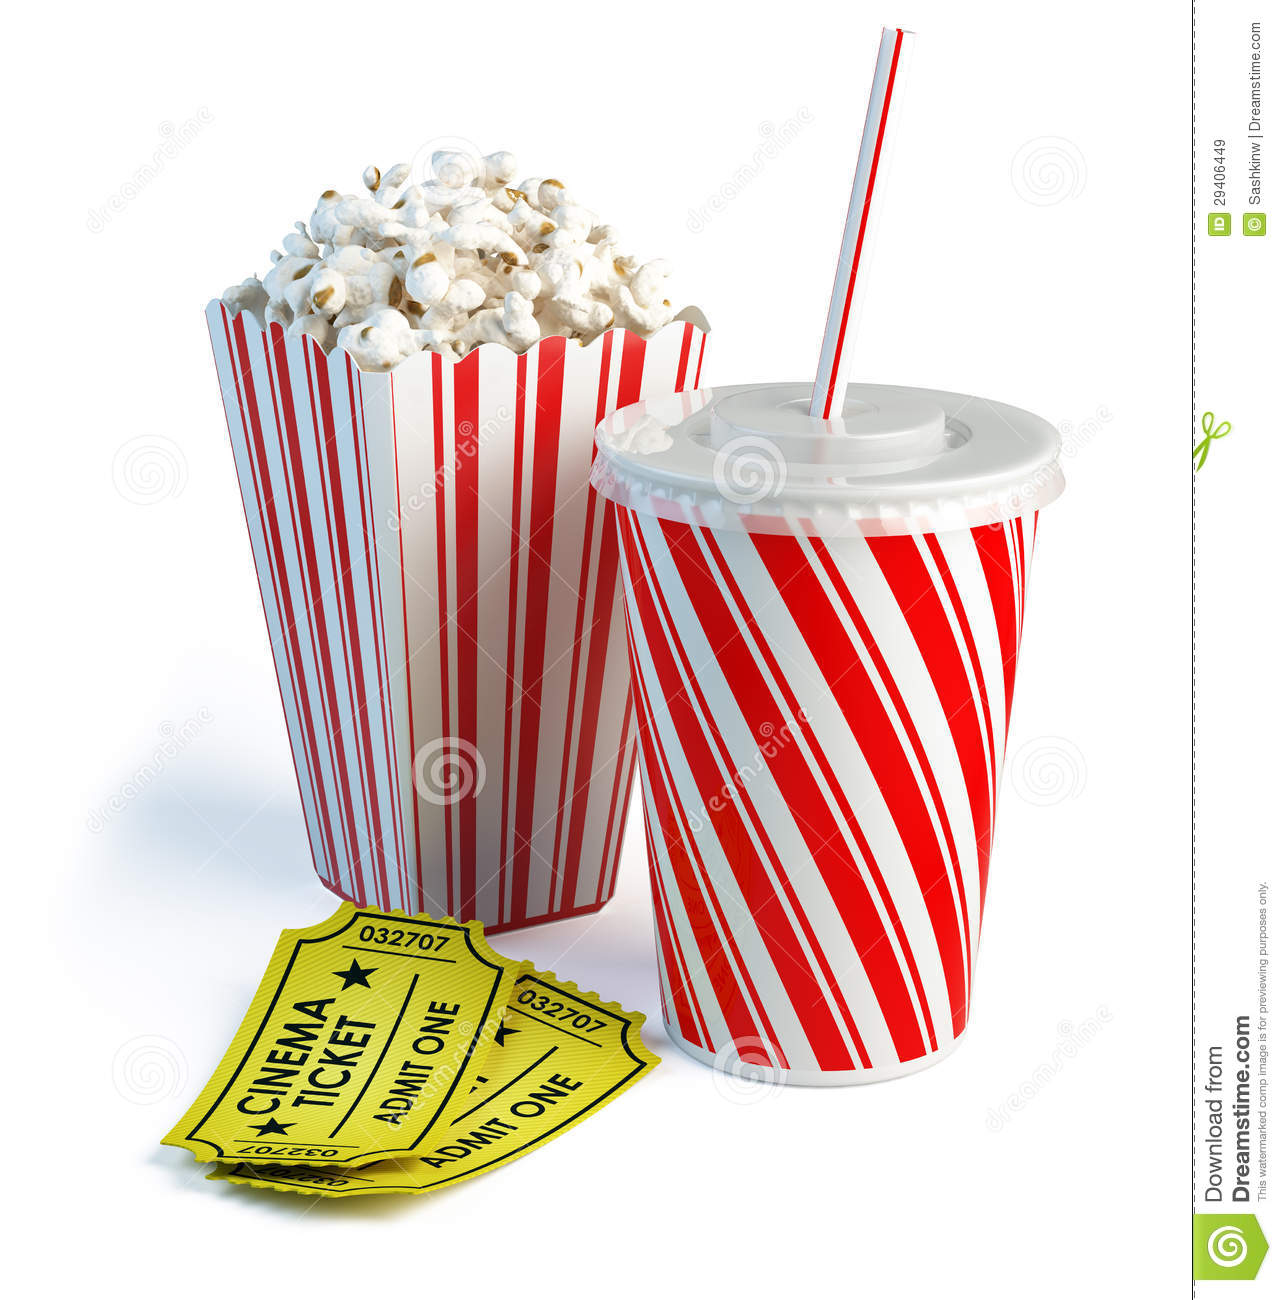 ... , Cola And Cinema Tickets Royalty Free Stock Images - Image: 29406449